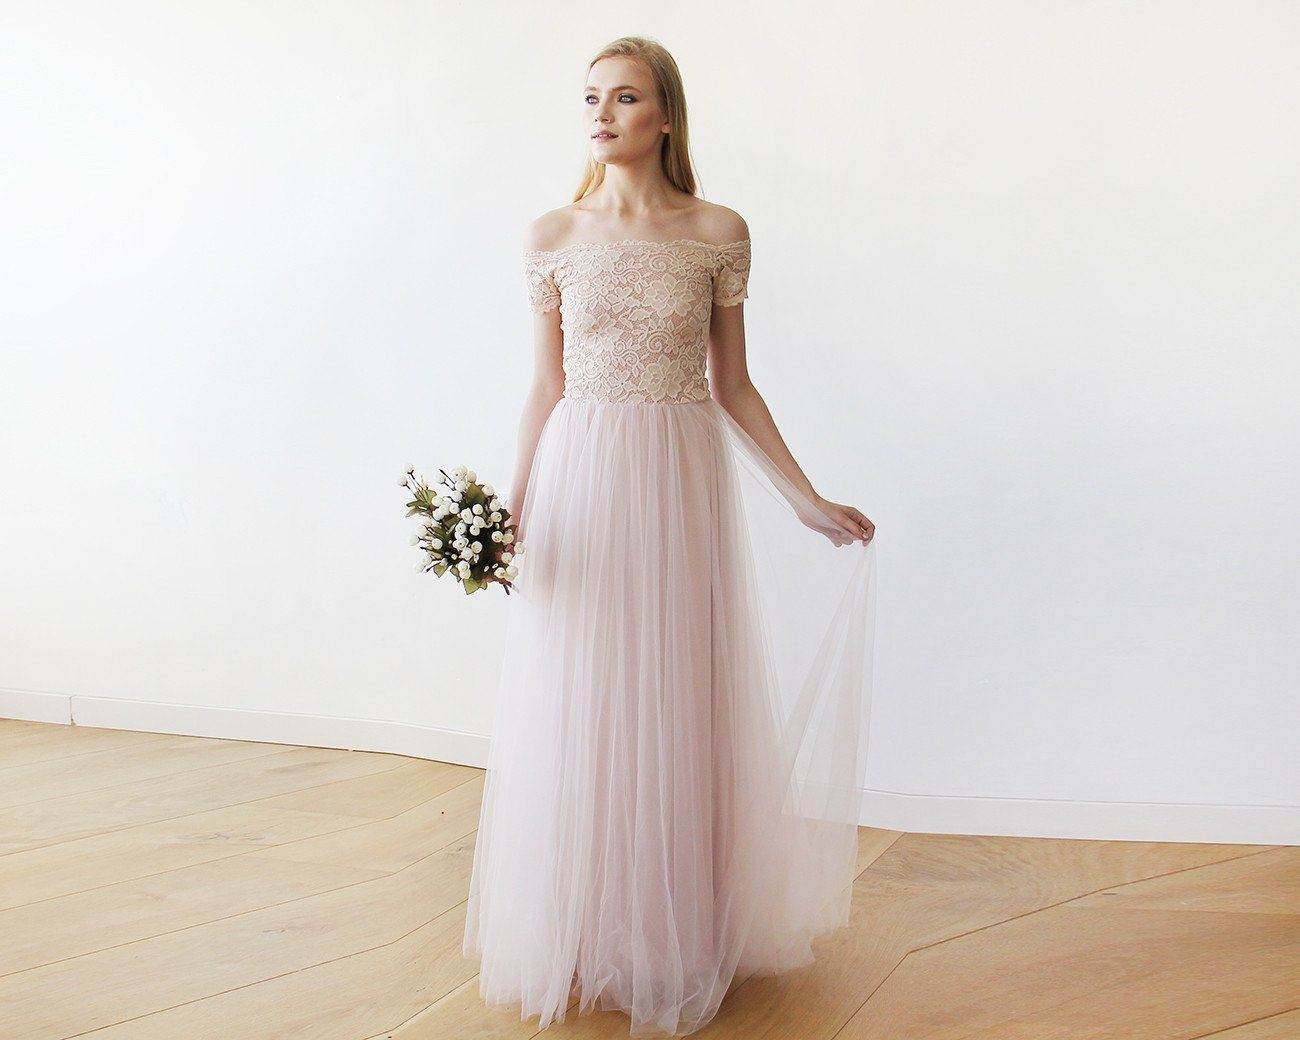 Tulle Dress with Short Sleeves